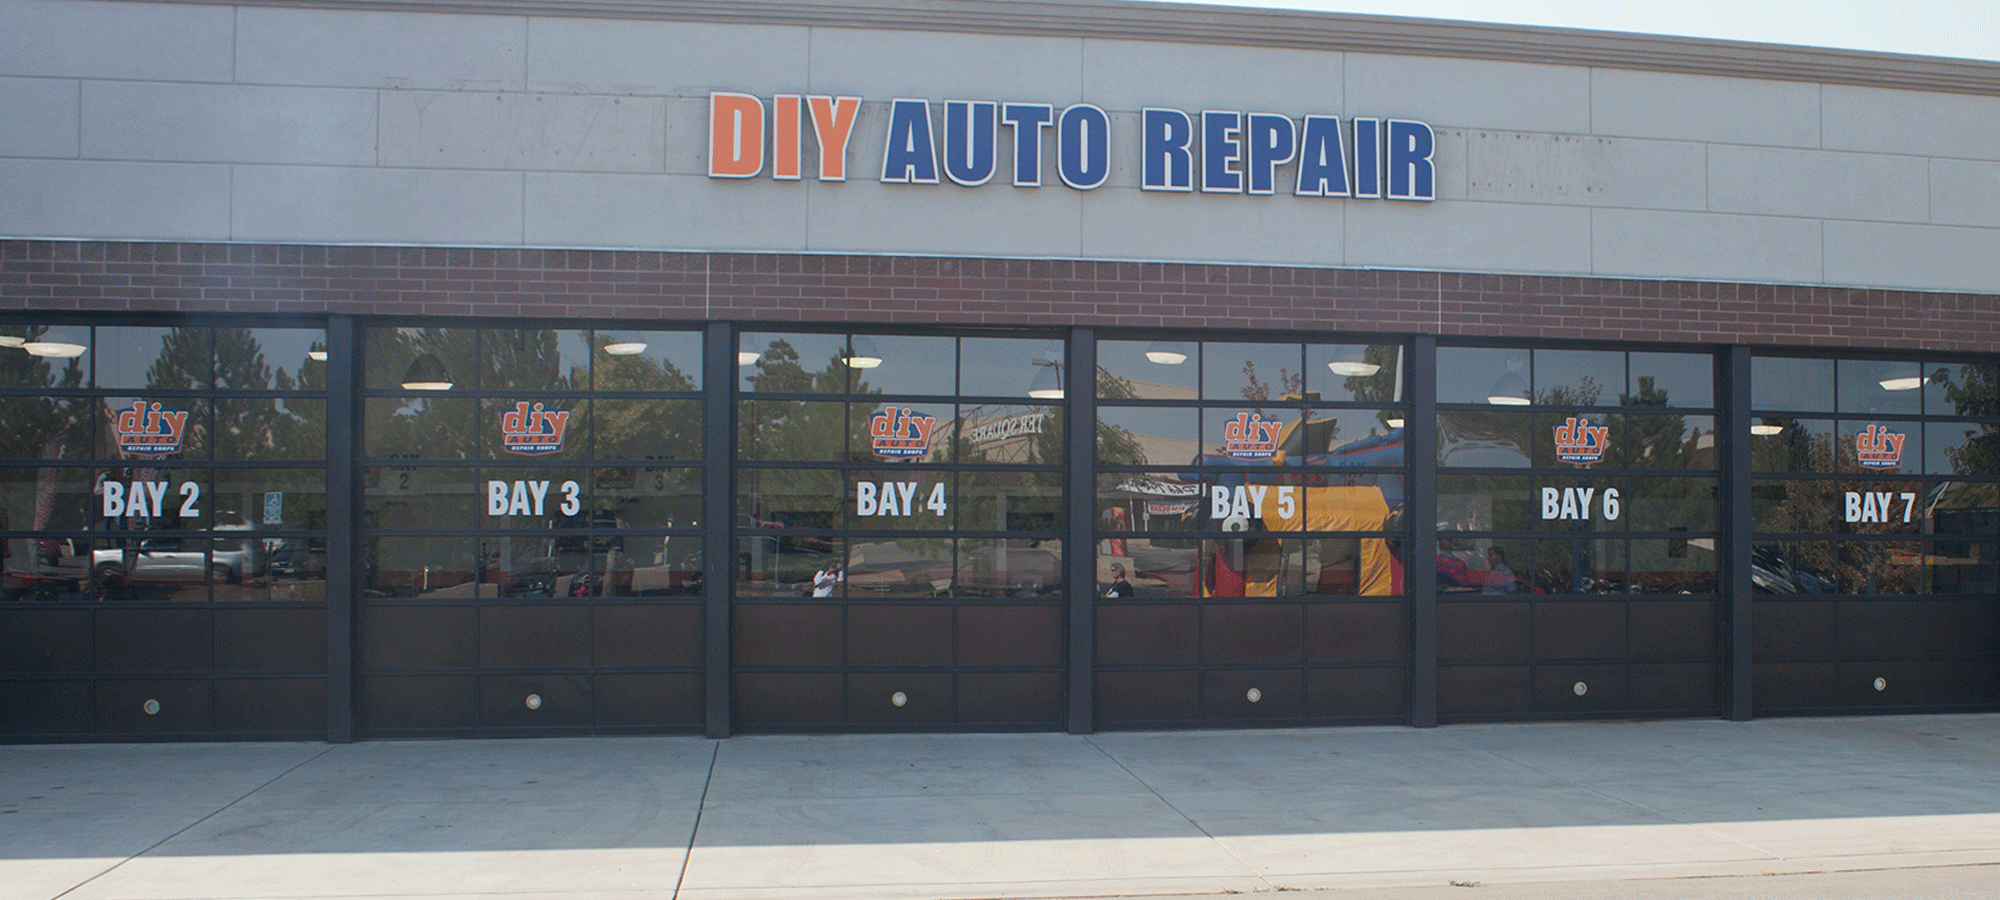 Auto Repair Shop Do It Yourself